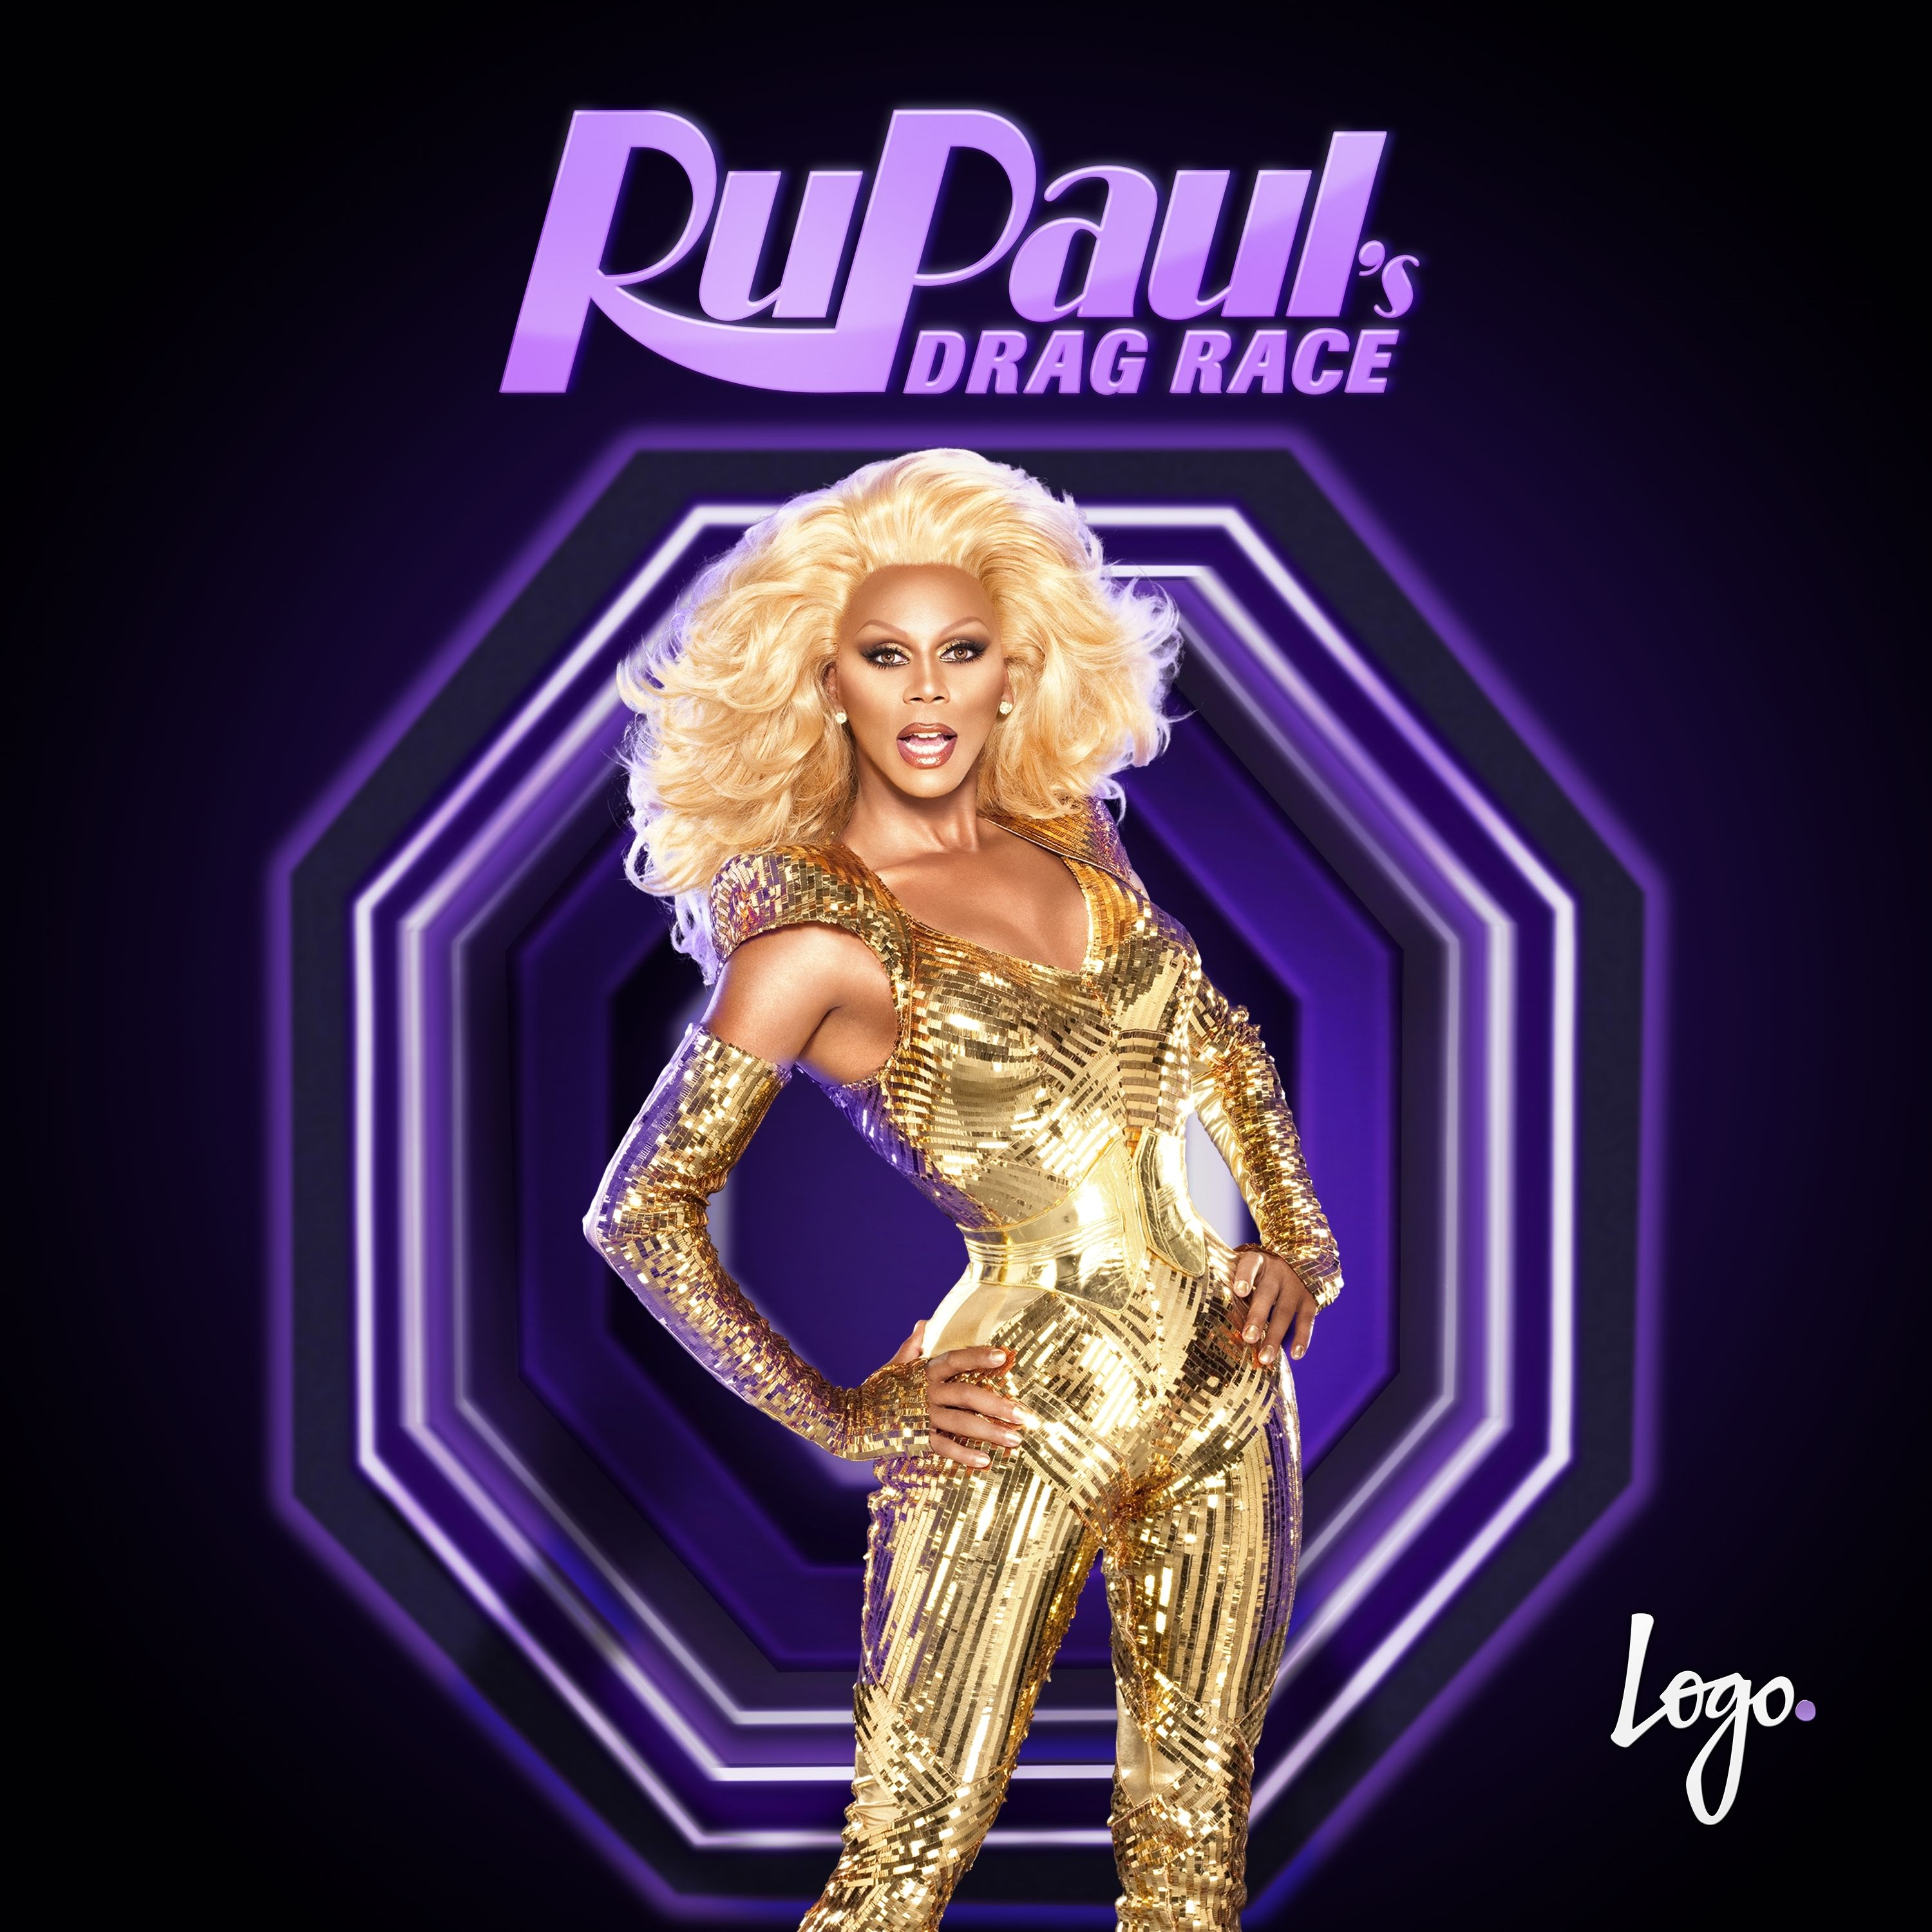 RuPaul's Drag Race (Season 4)